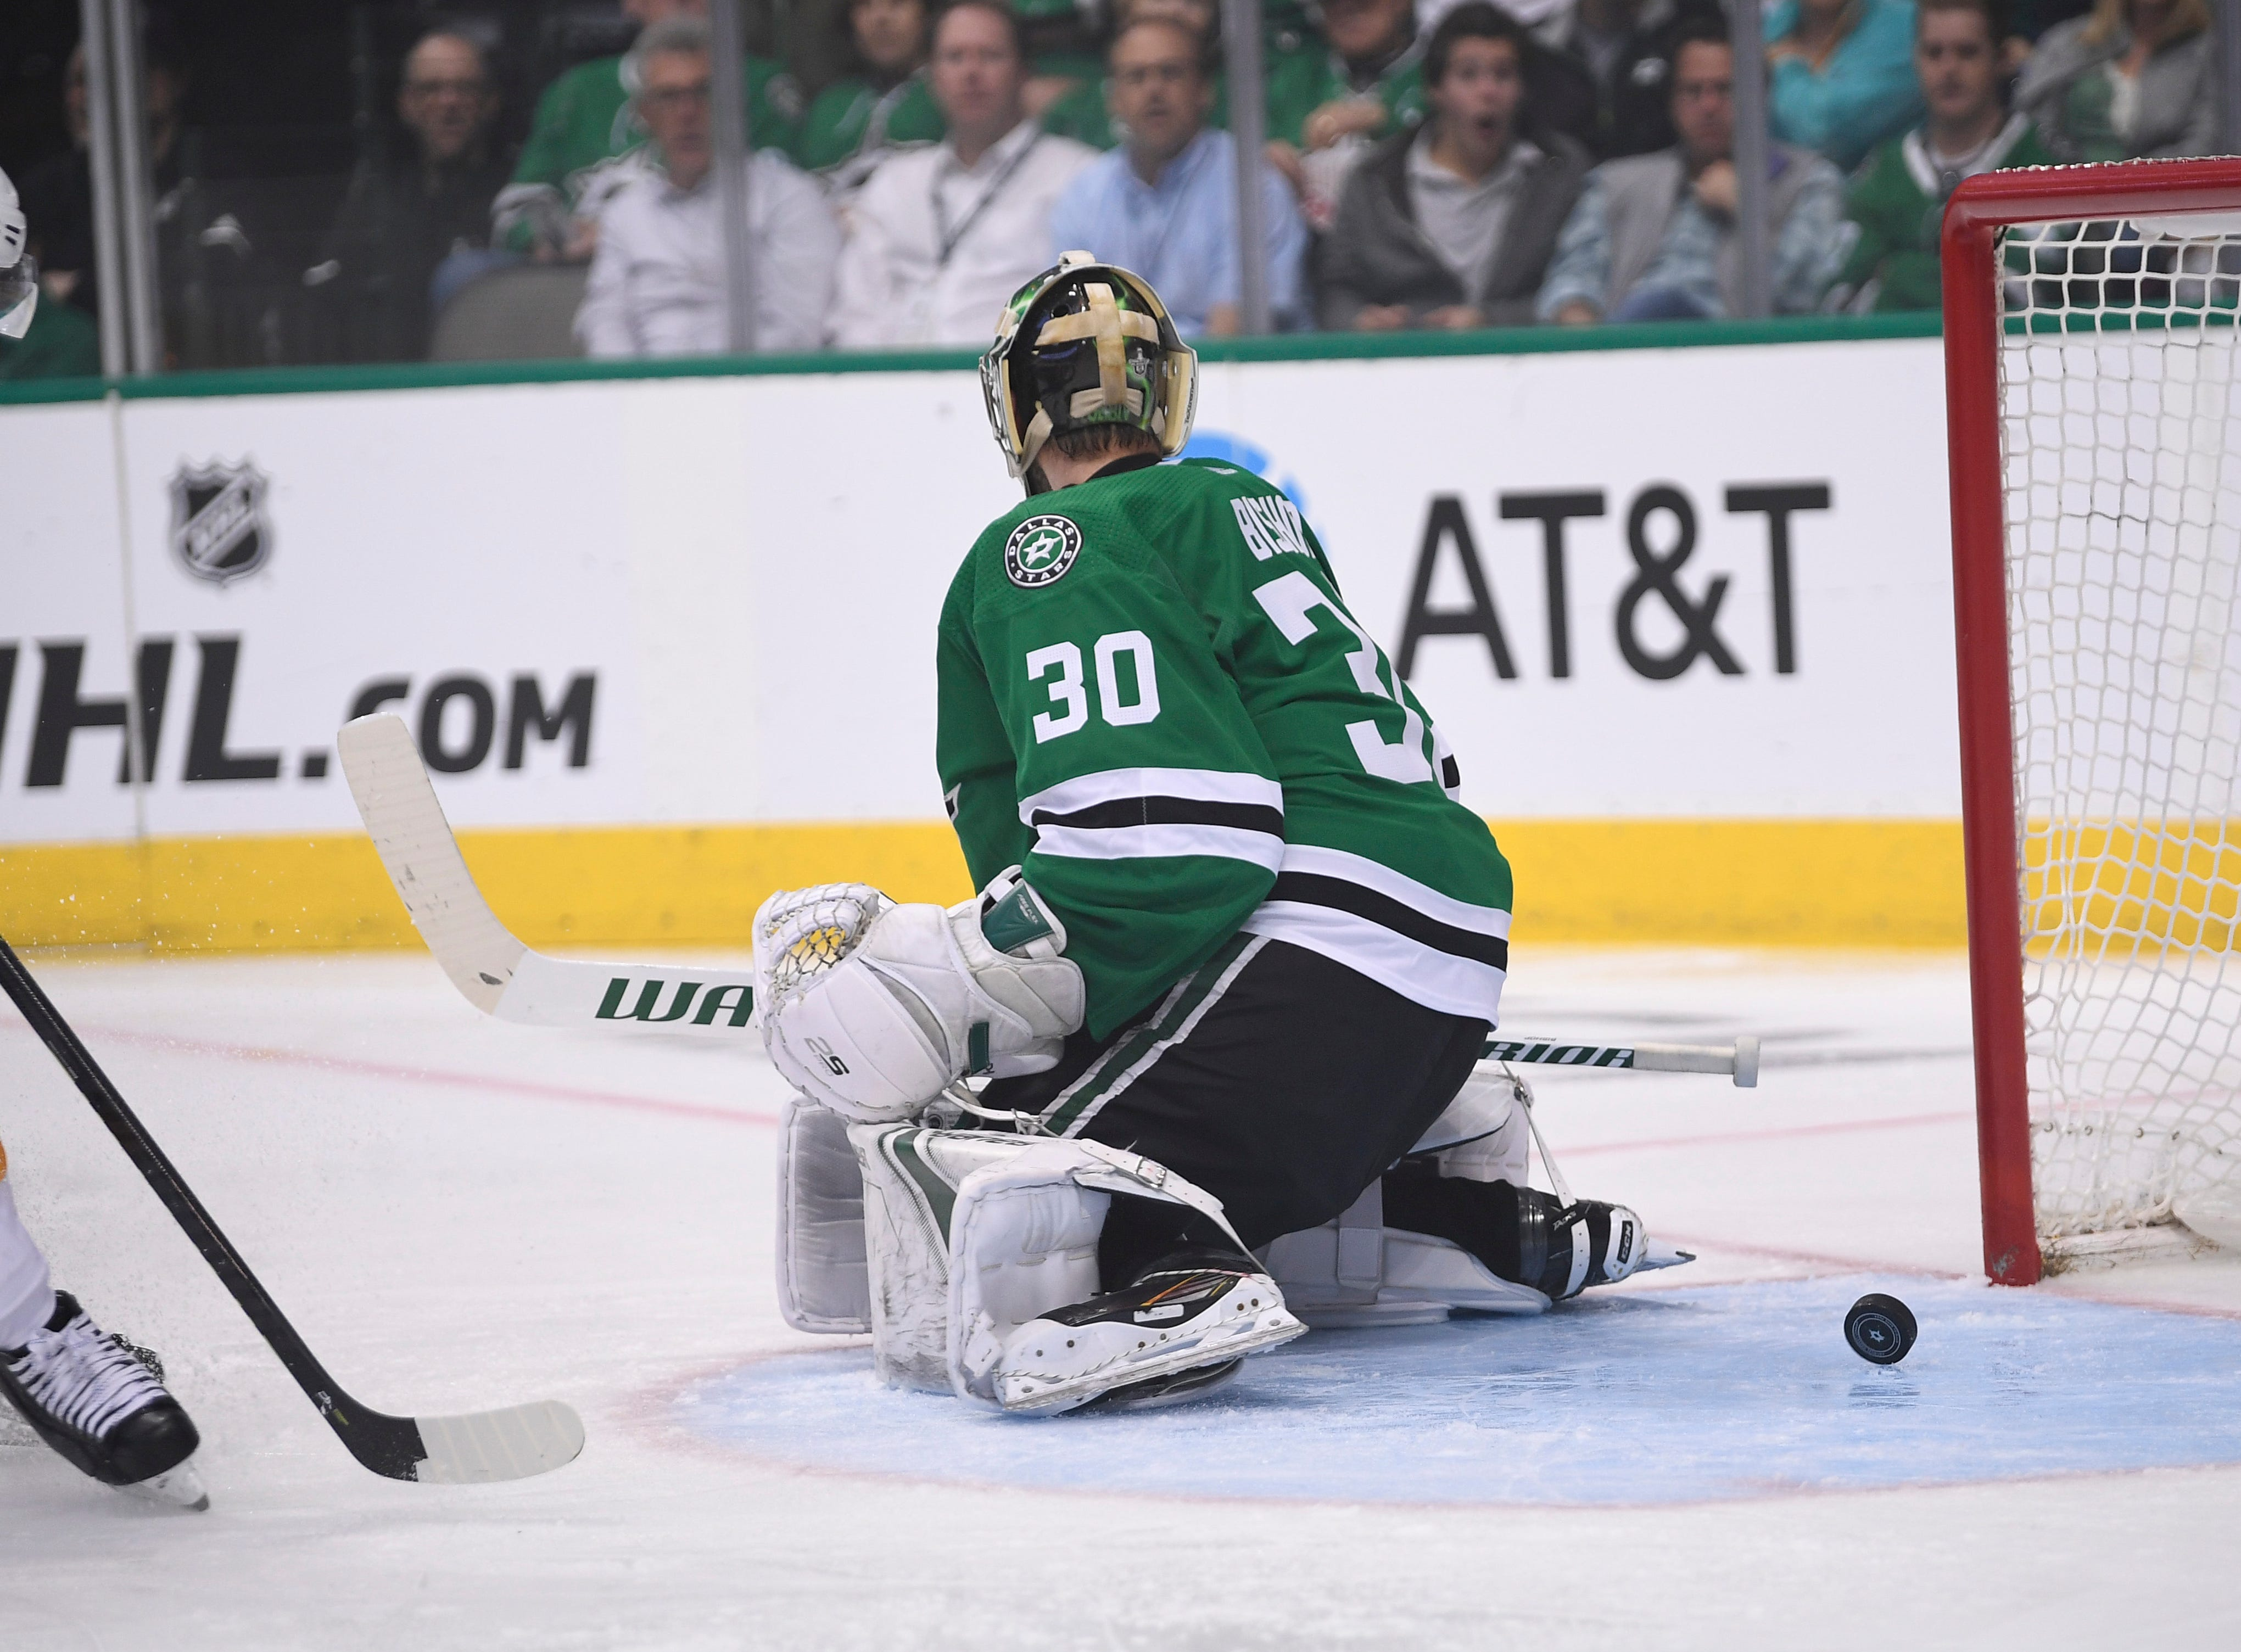 A shot from Nashville Predators center Rocco Grimaldi gets by Dallas Stars goaltender Ben Bishop (30) for a goal during the second period of the divisional semifinal game at the American Airlines Center in Dallas, Texas., Monday, April 15, 2019.